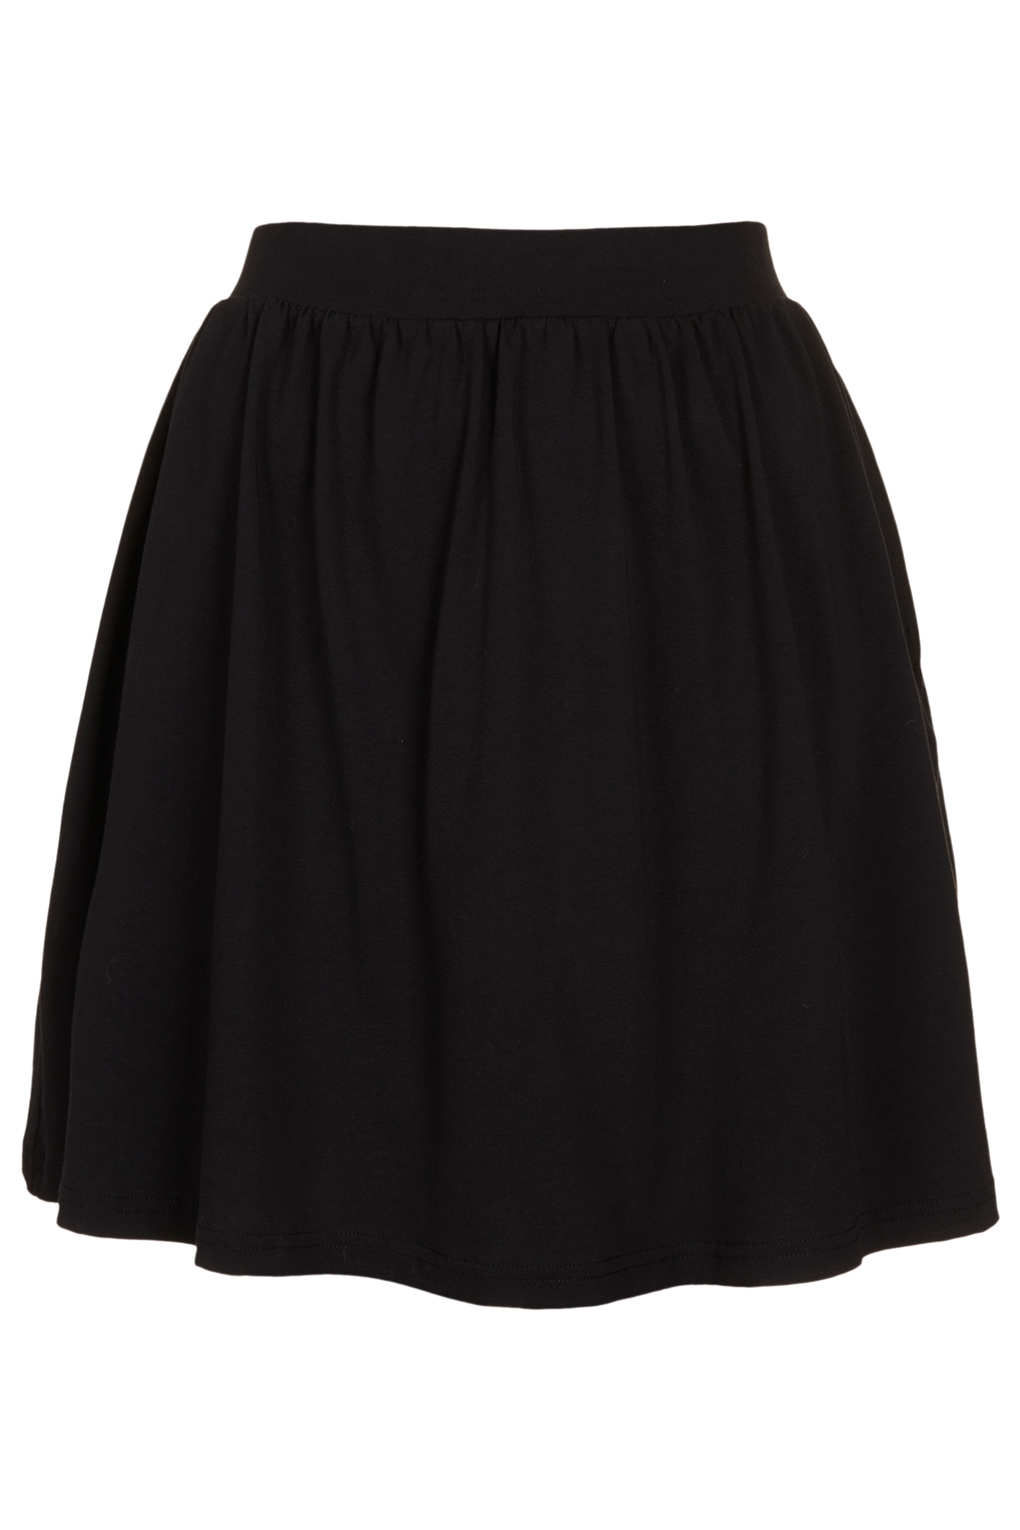 Candid Styles Womens Plain Knee Length Ladies Soft Stretch Flared Skater Midi Skirt Plus Size. £ out of 5 stars 6. oodji Ultra Womens Jersey Pencil Skirt. £ - £ Prime. Abielmo Lovely Pull on Curved Red Blue Black Grey Stretchy Jersey Long Maxi Skirt Full Length Elasticated Waist £ - £ Prime.